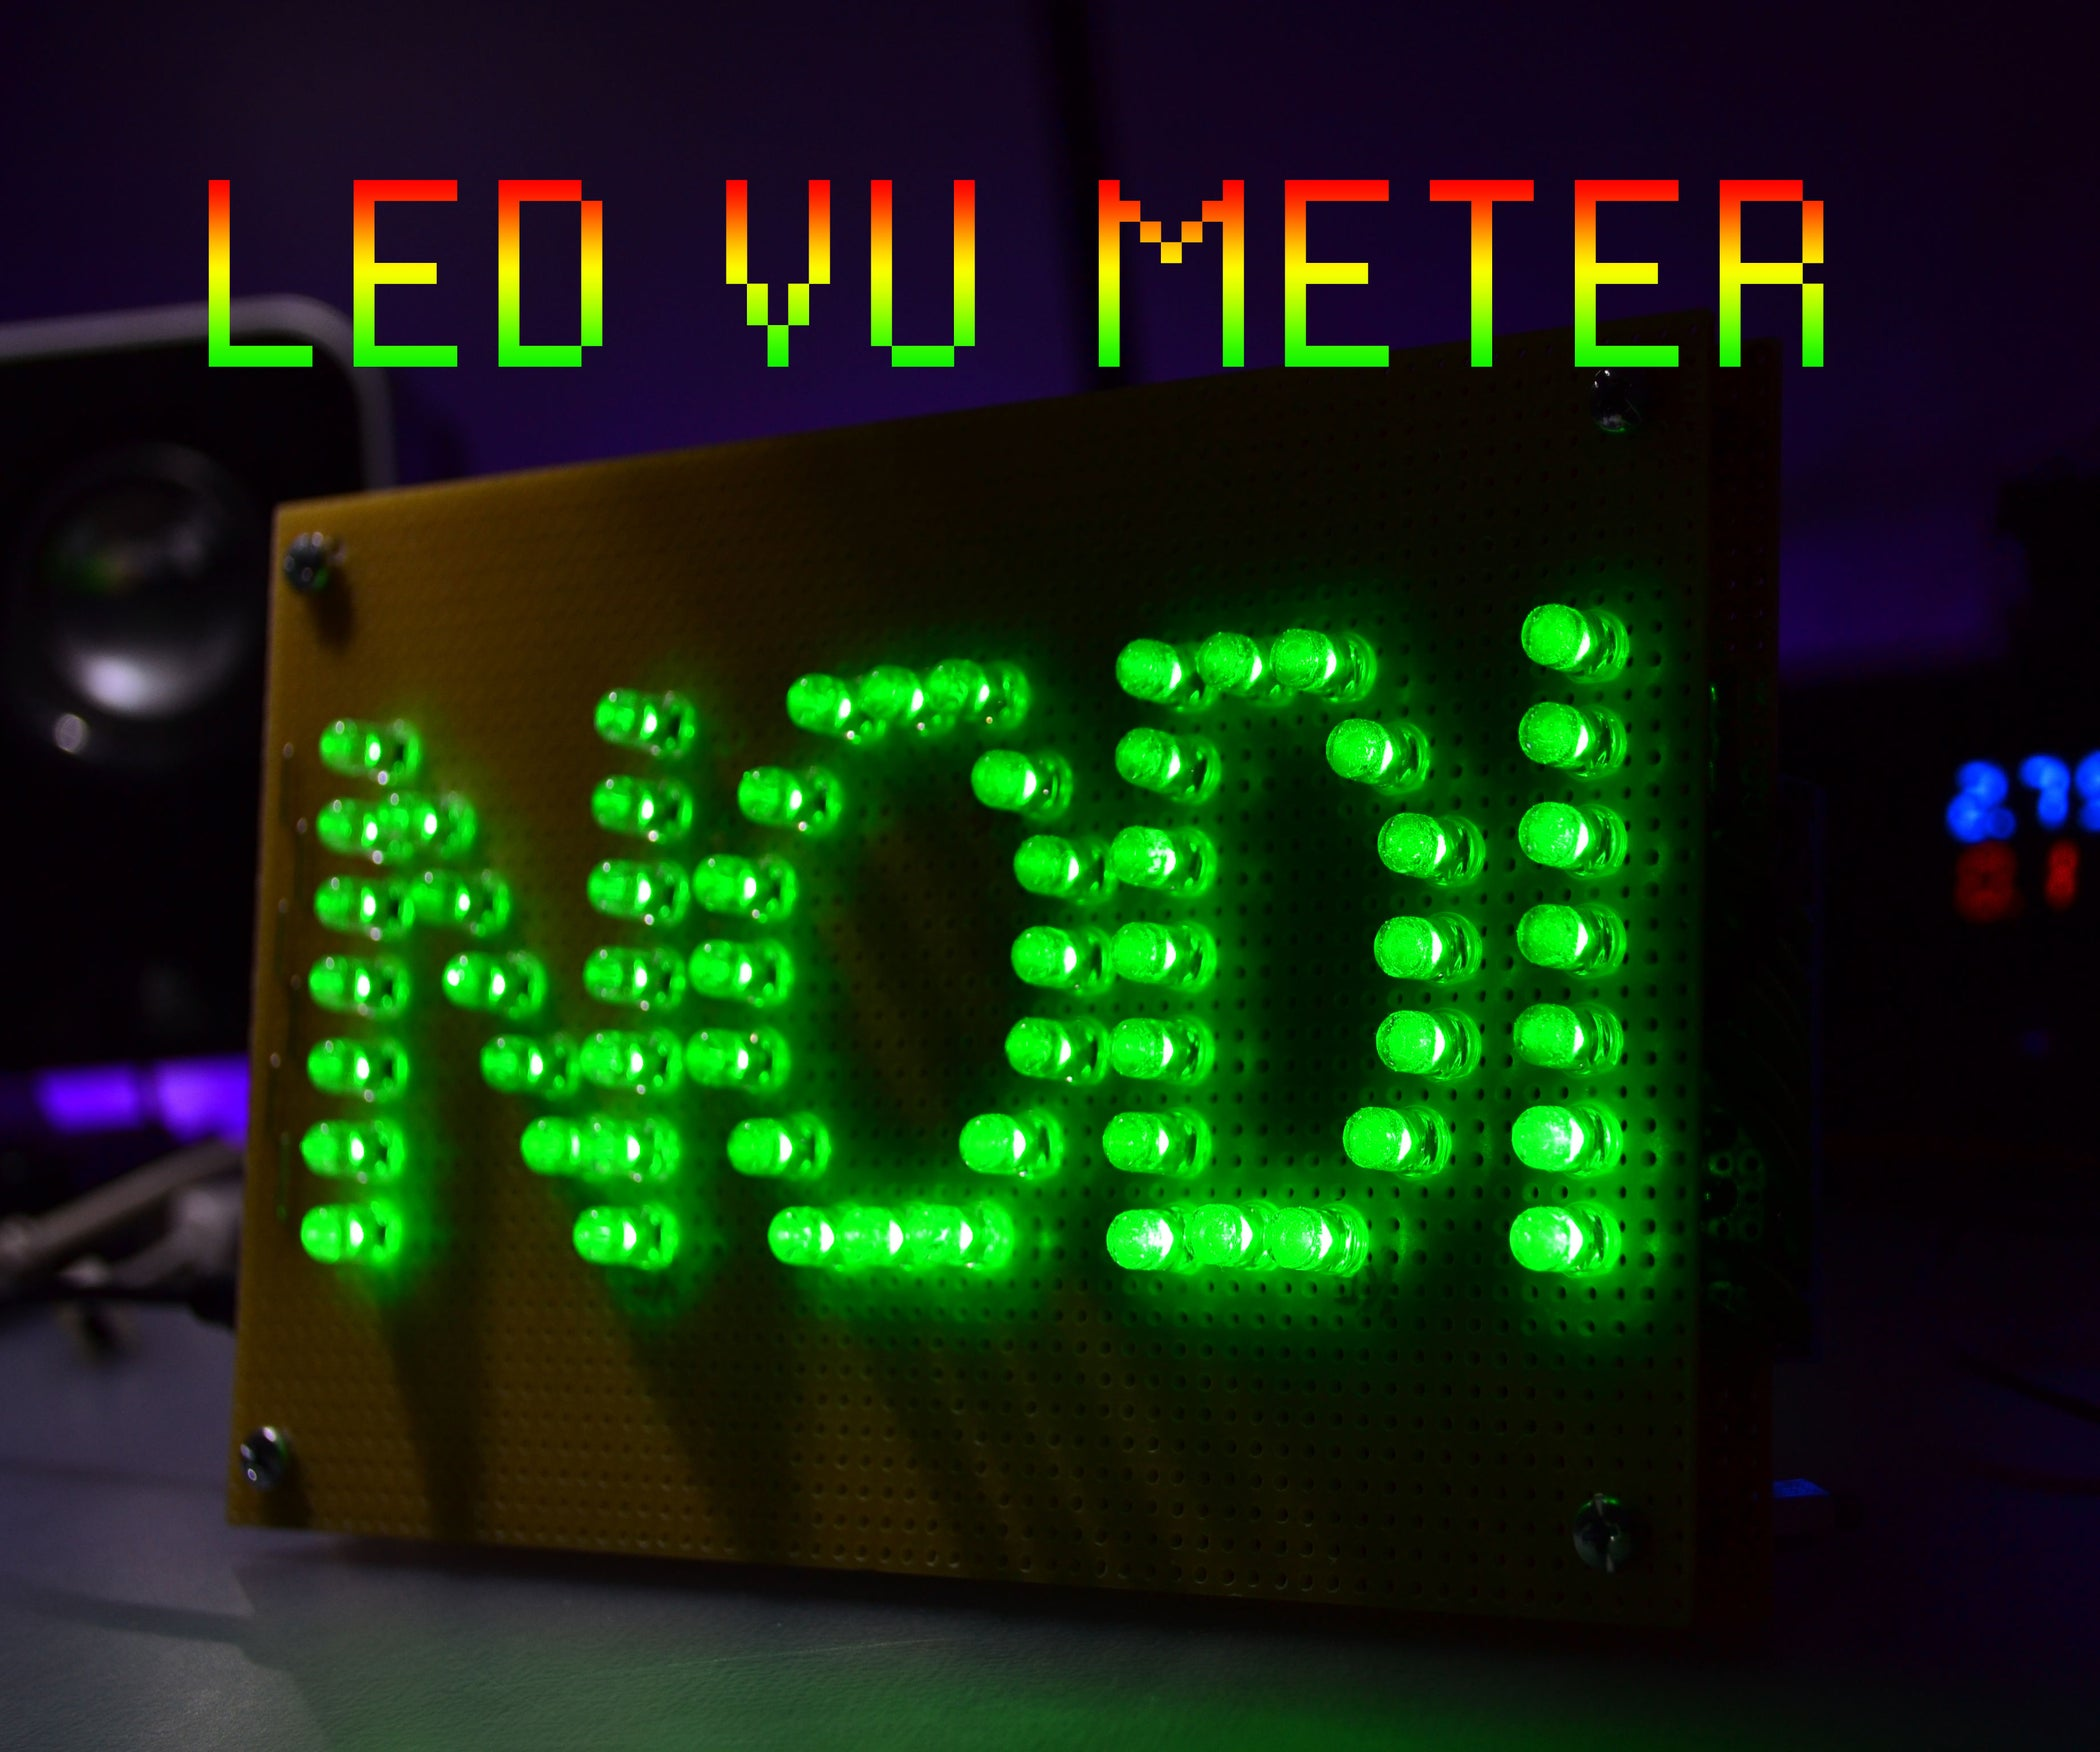 Led Vu Meter 6 Steps With Pictures Be The First To Review Lm324 Quad Operational Amplifier Cancel